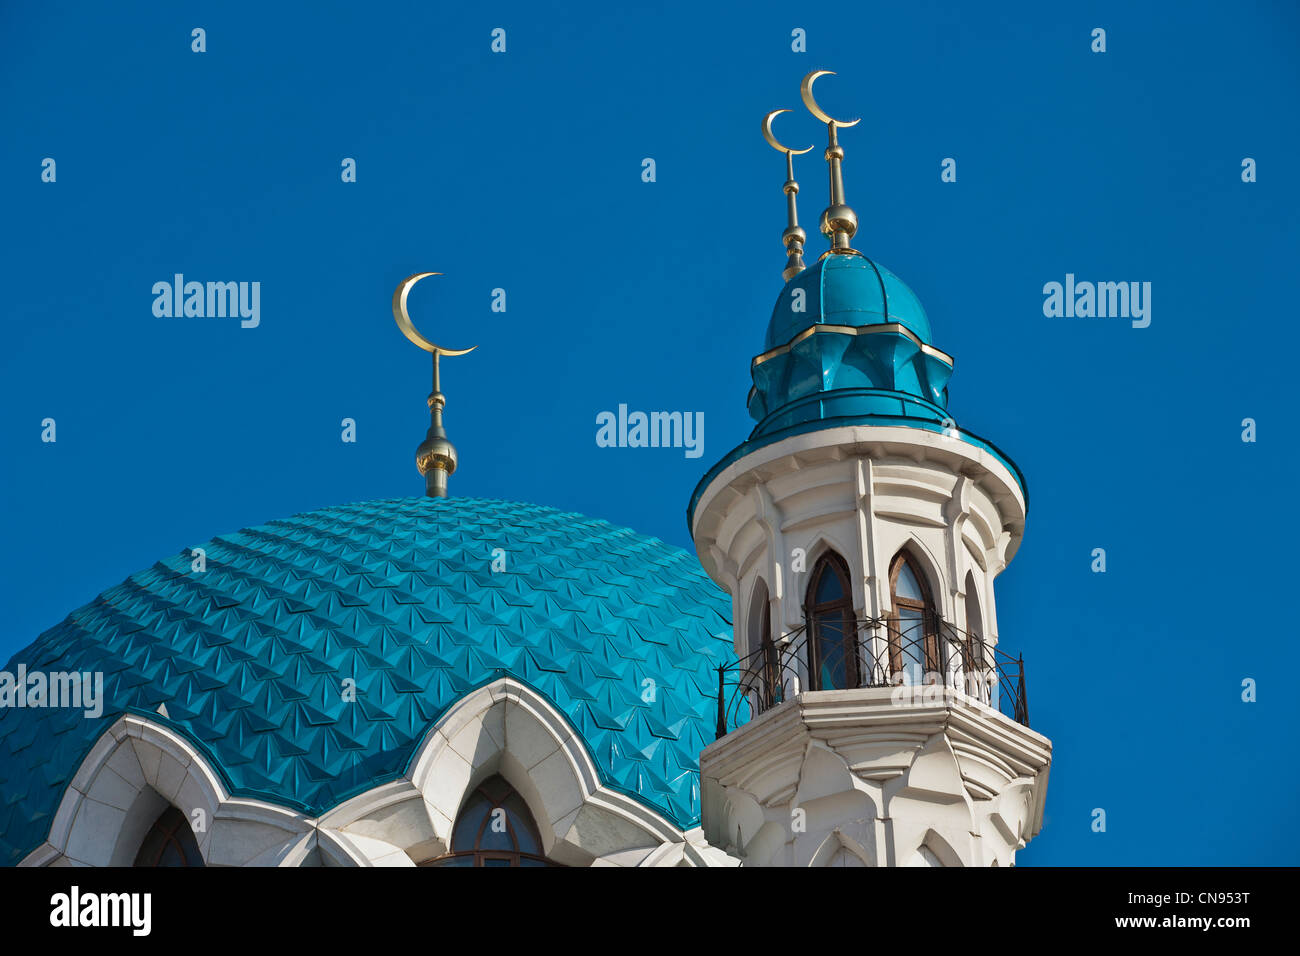 Mosque of Kul-Sharif - Stock Image